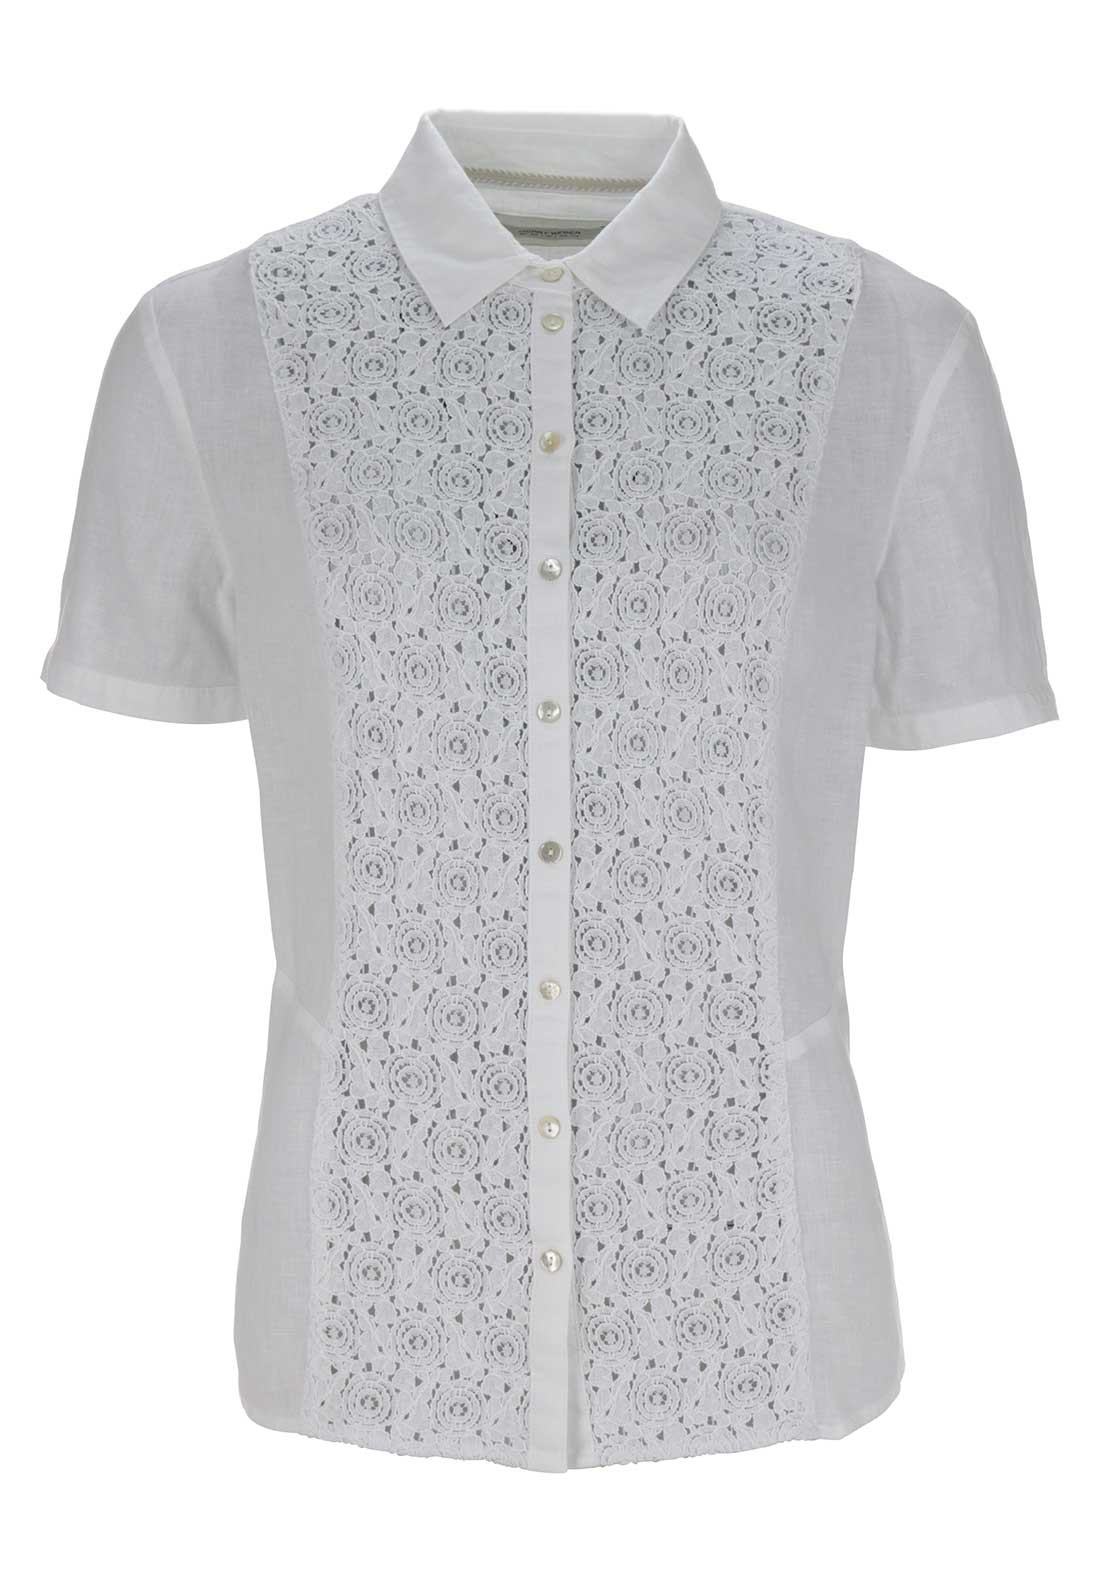 Gerry Weber Sheer Lace Trim Short Sleeve Linen Blouse, White